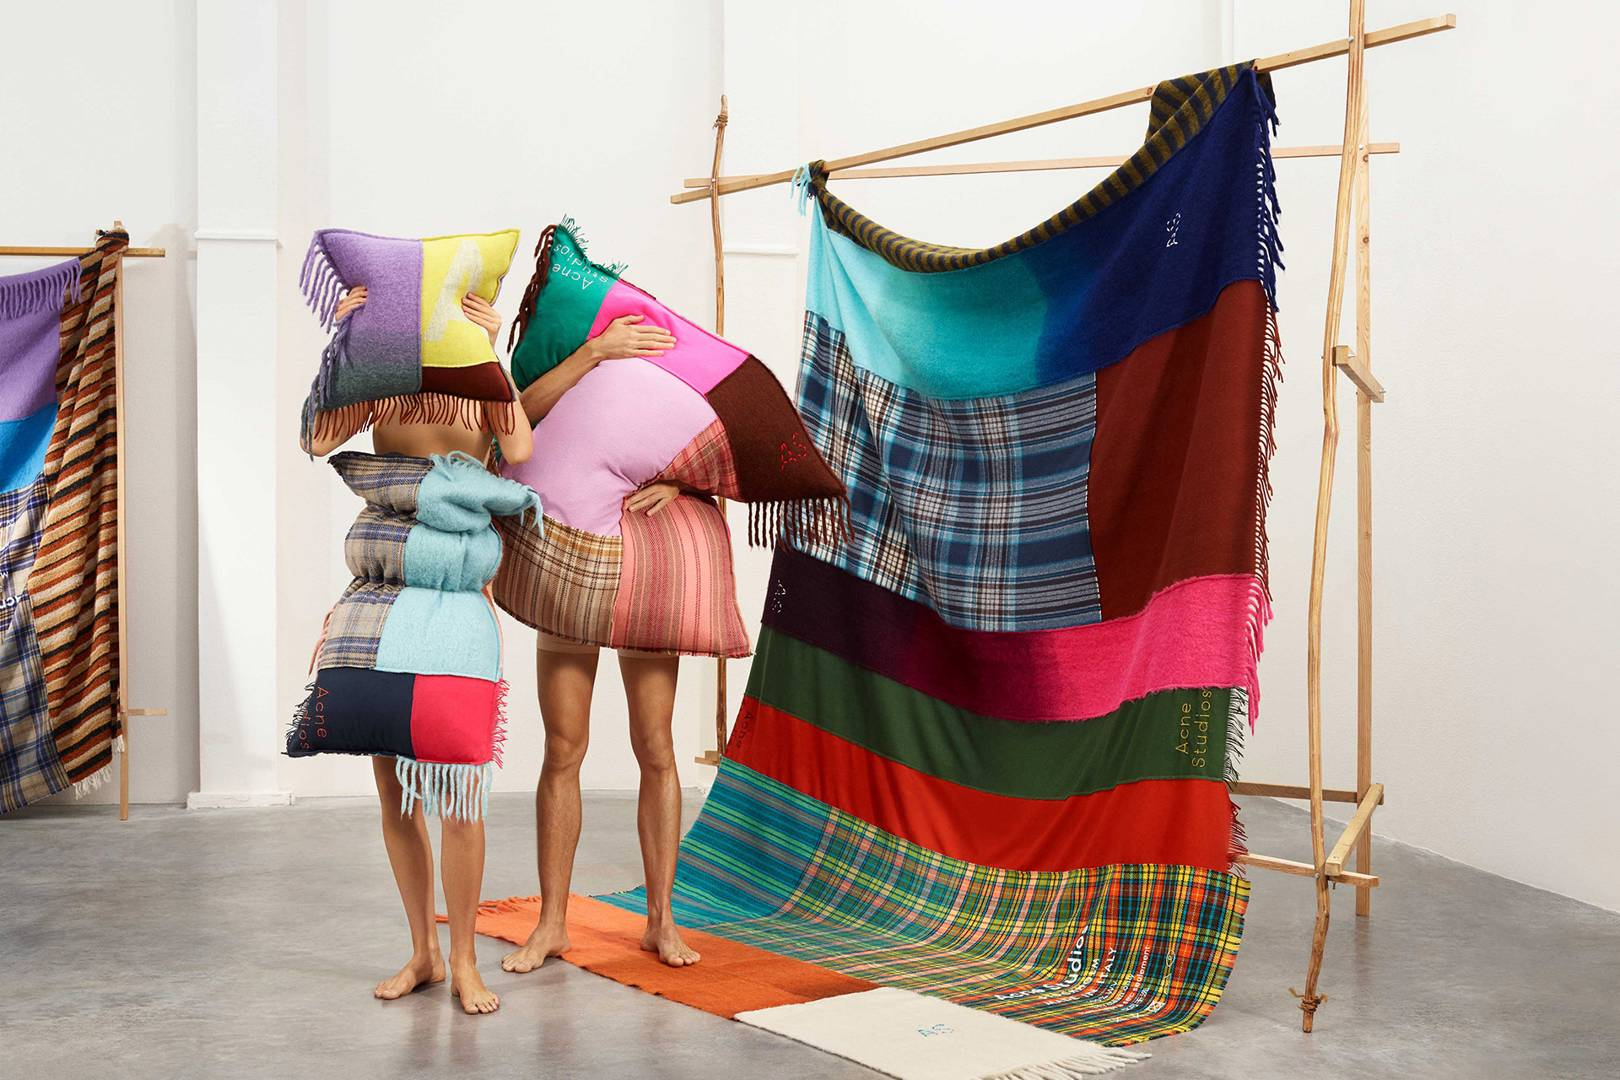 ca498bdea1c Acne Studios Launches Homeware Inspired By Its Signature Scarves ...